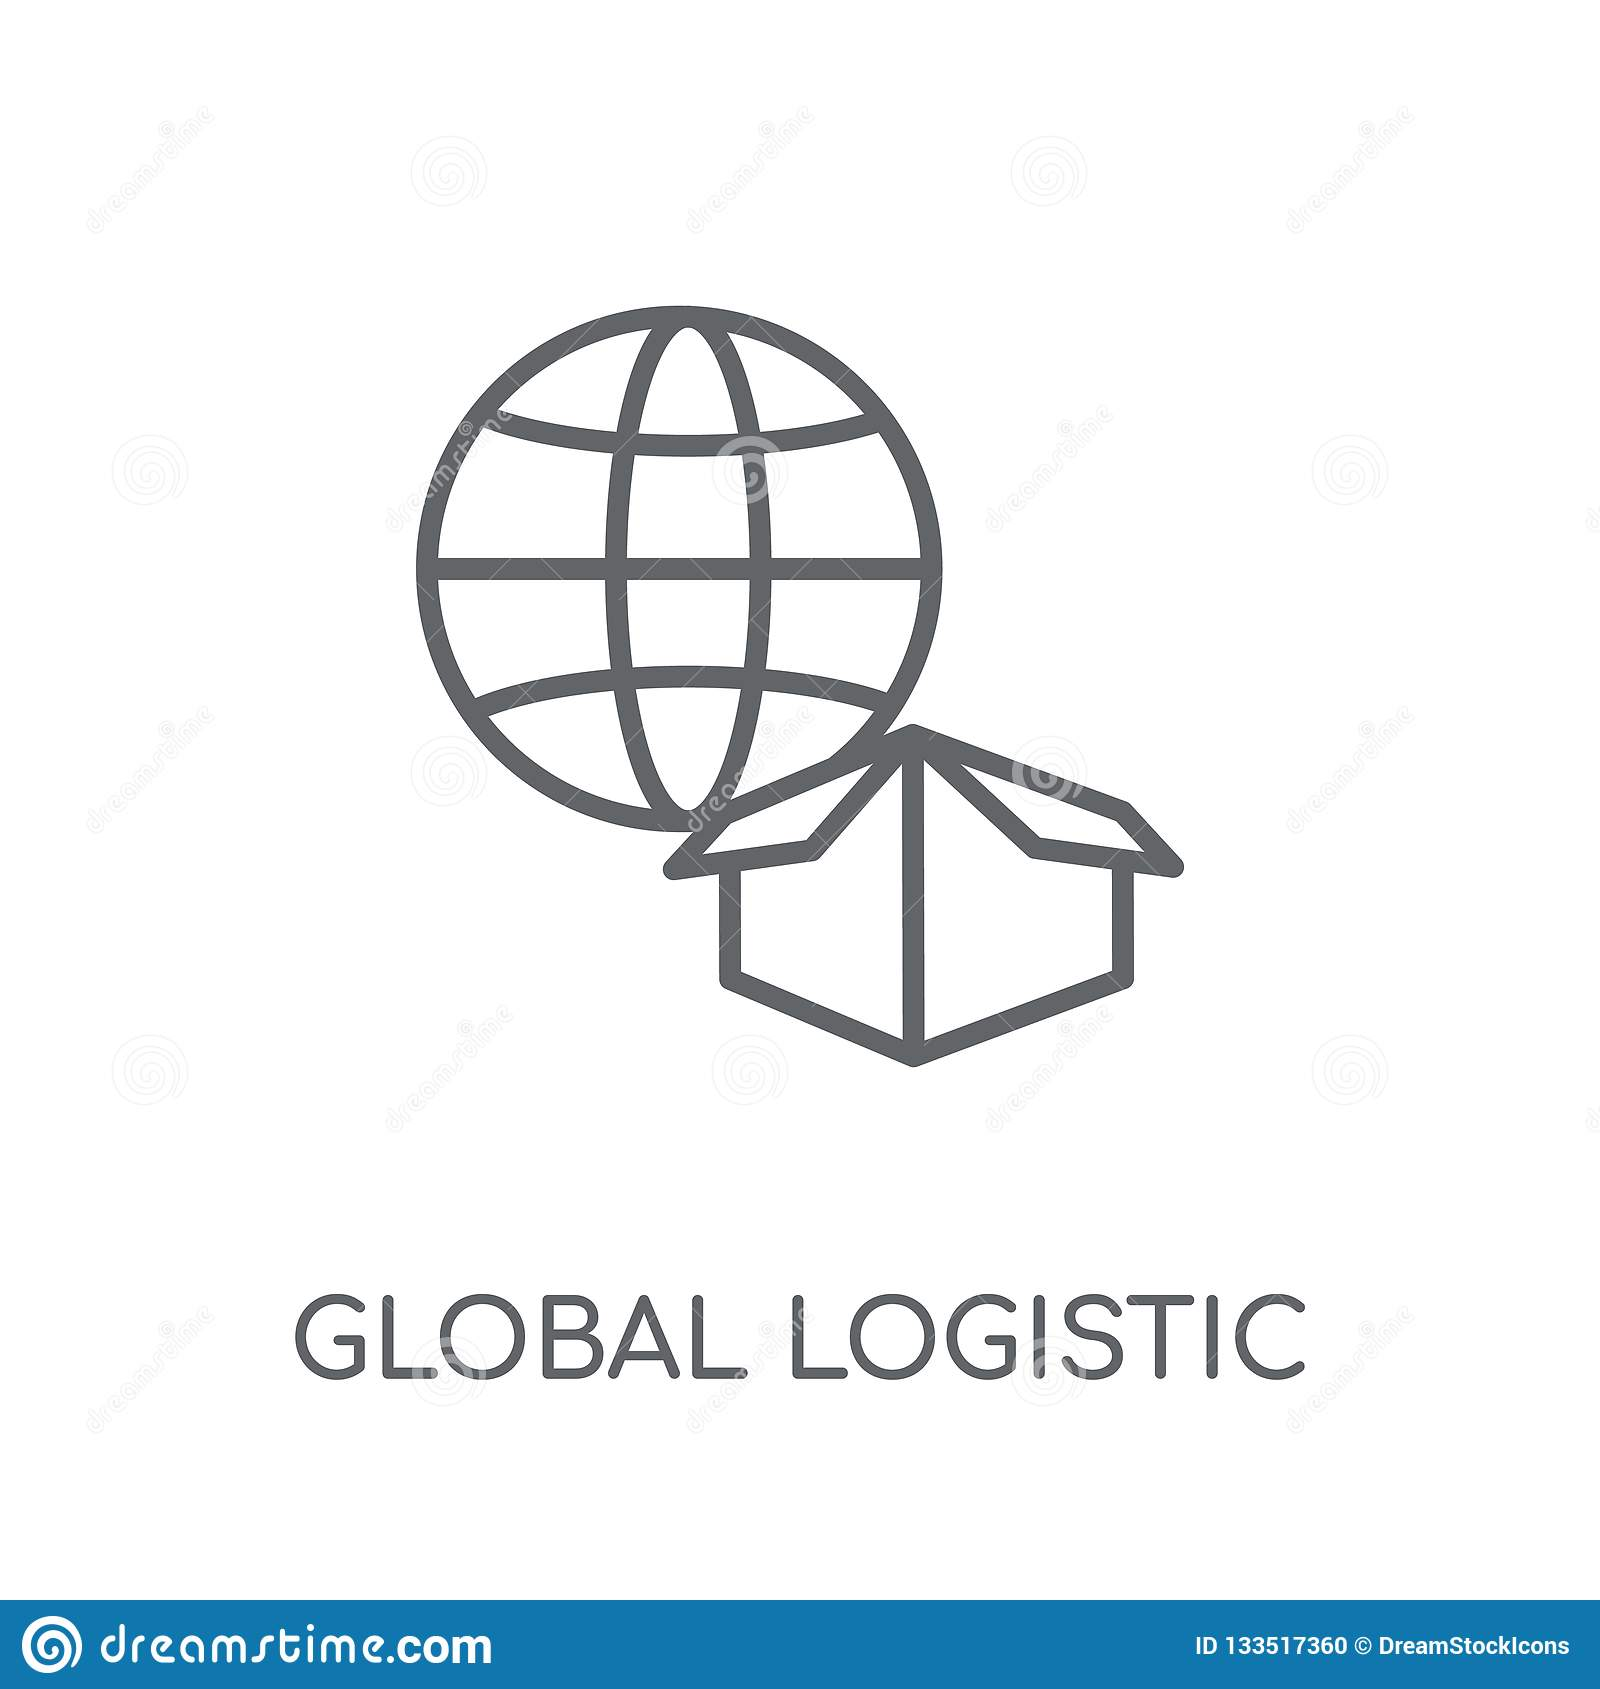 Global Logistic linear icon. Modern outline Global Logistic logo